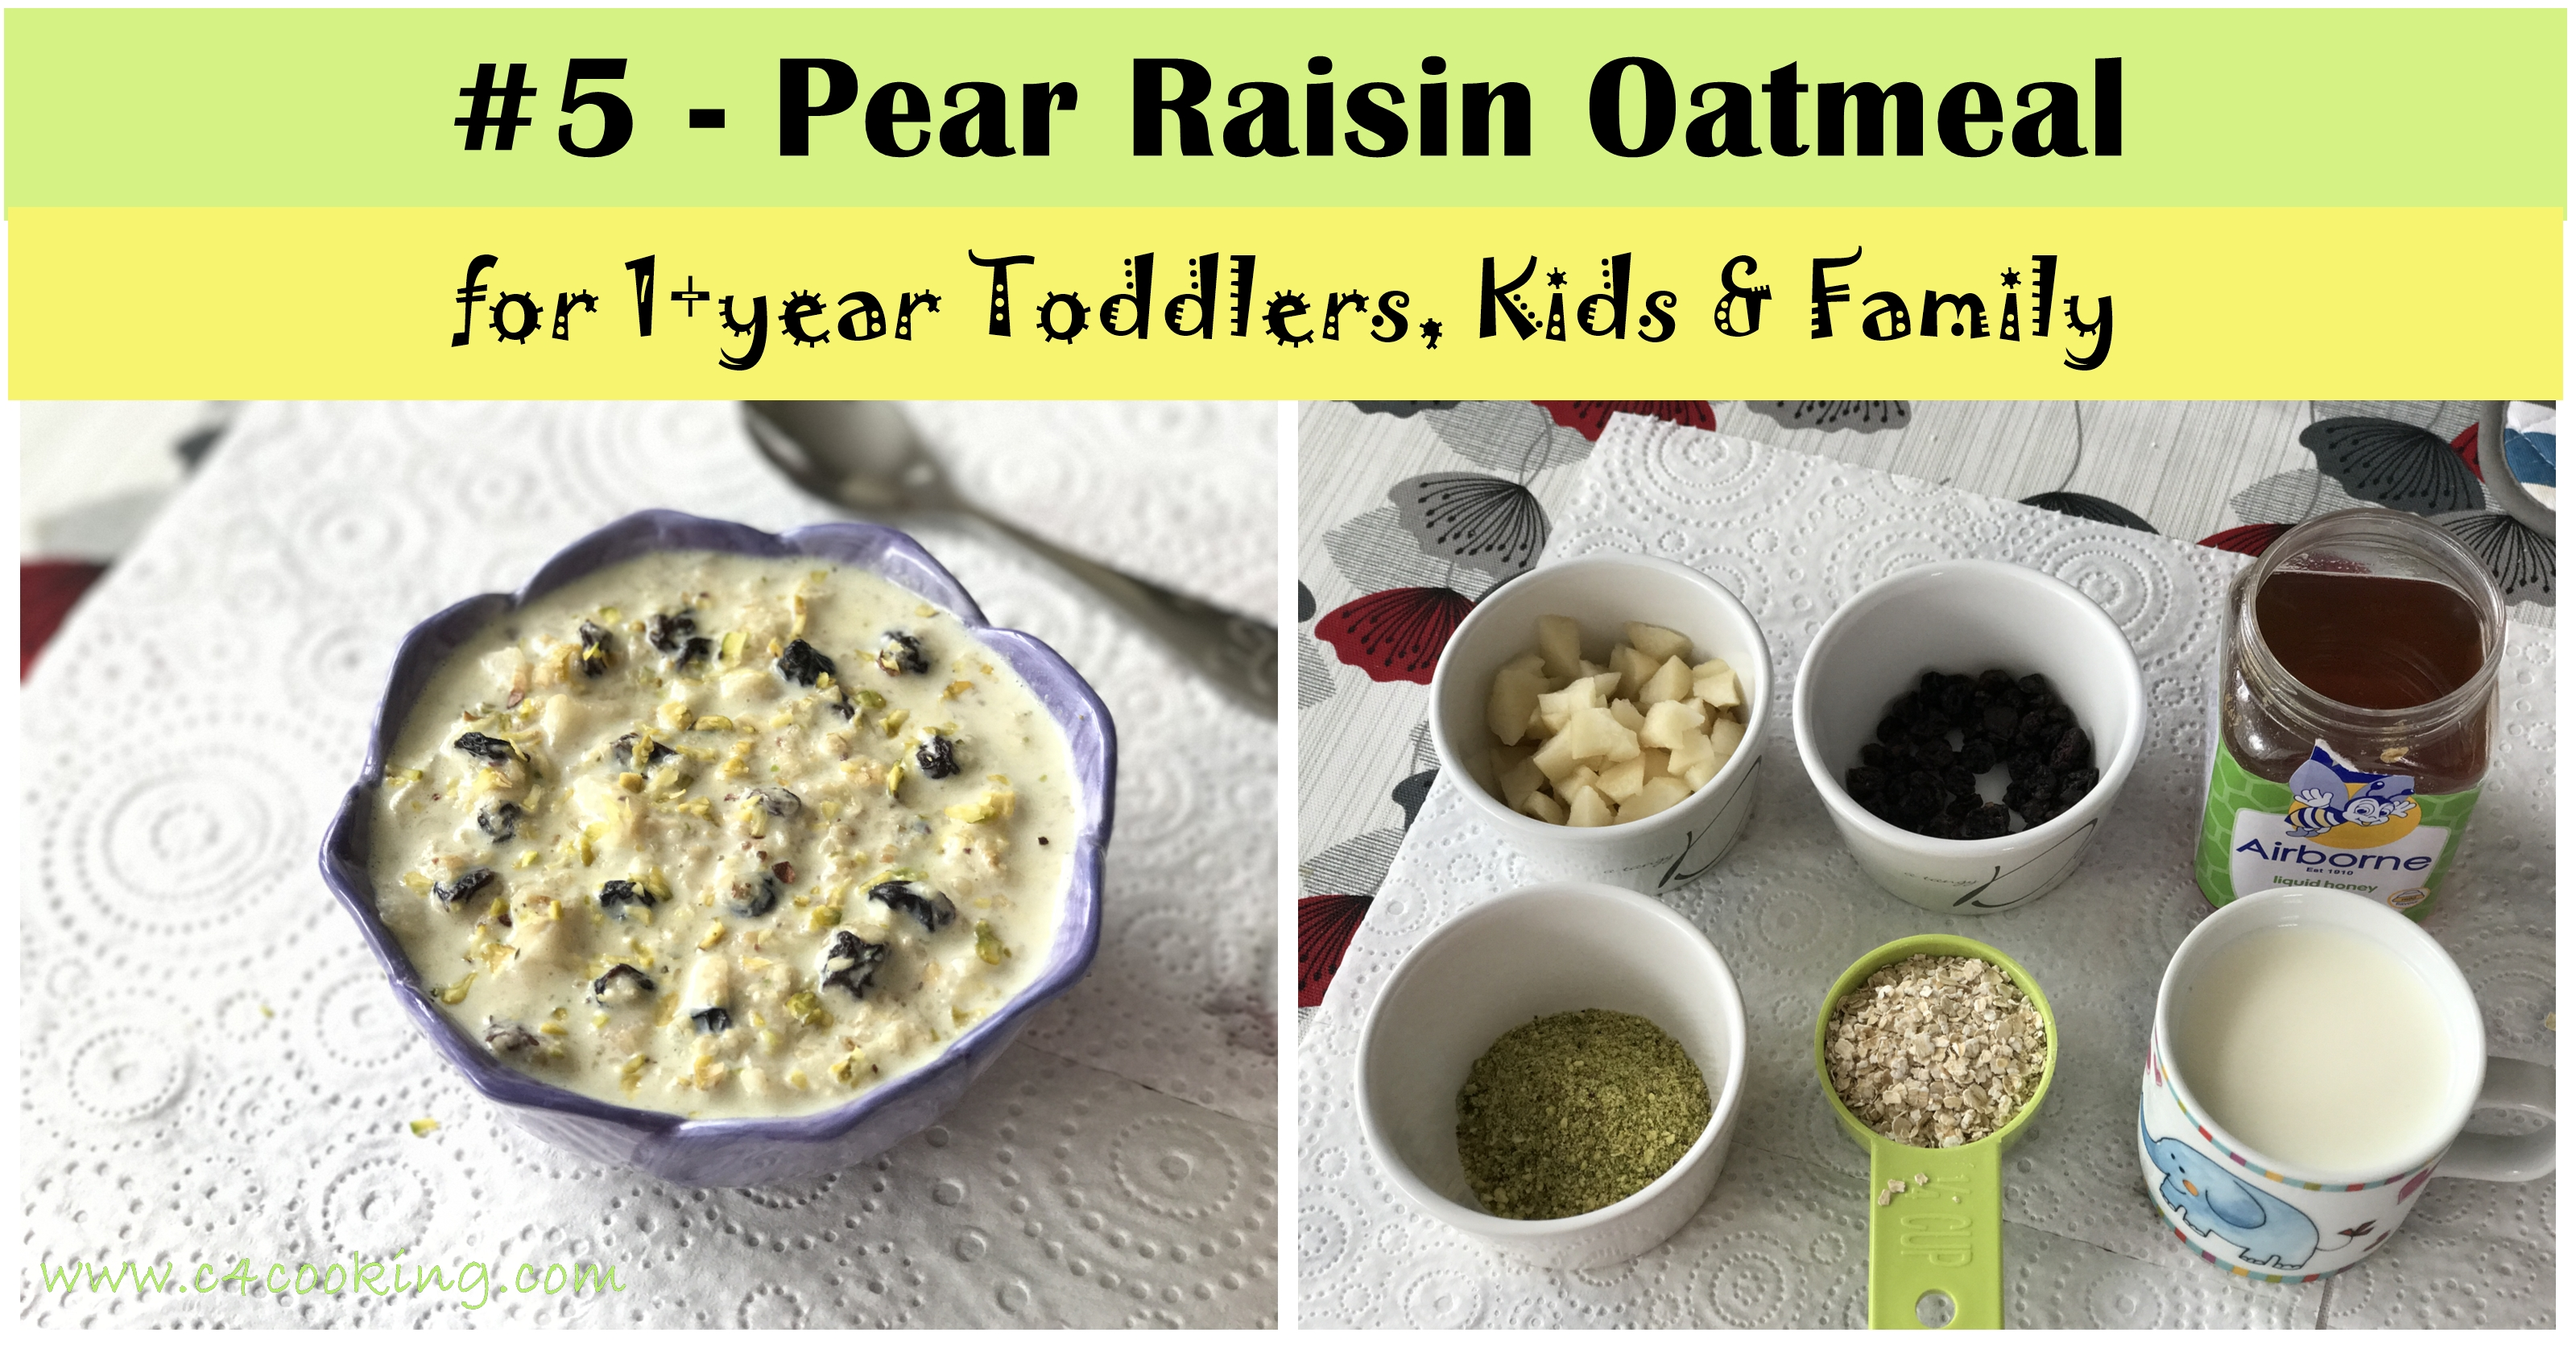 toddler oatmeal recipes, toddler breakfast recipe, Pear raisin oatmeal, kids breakfast recipes